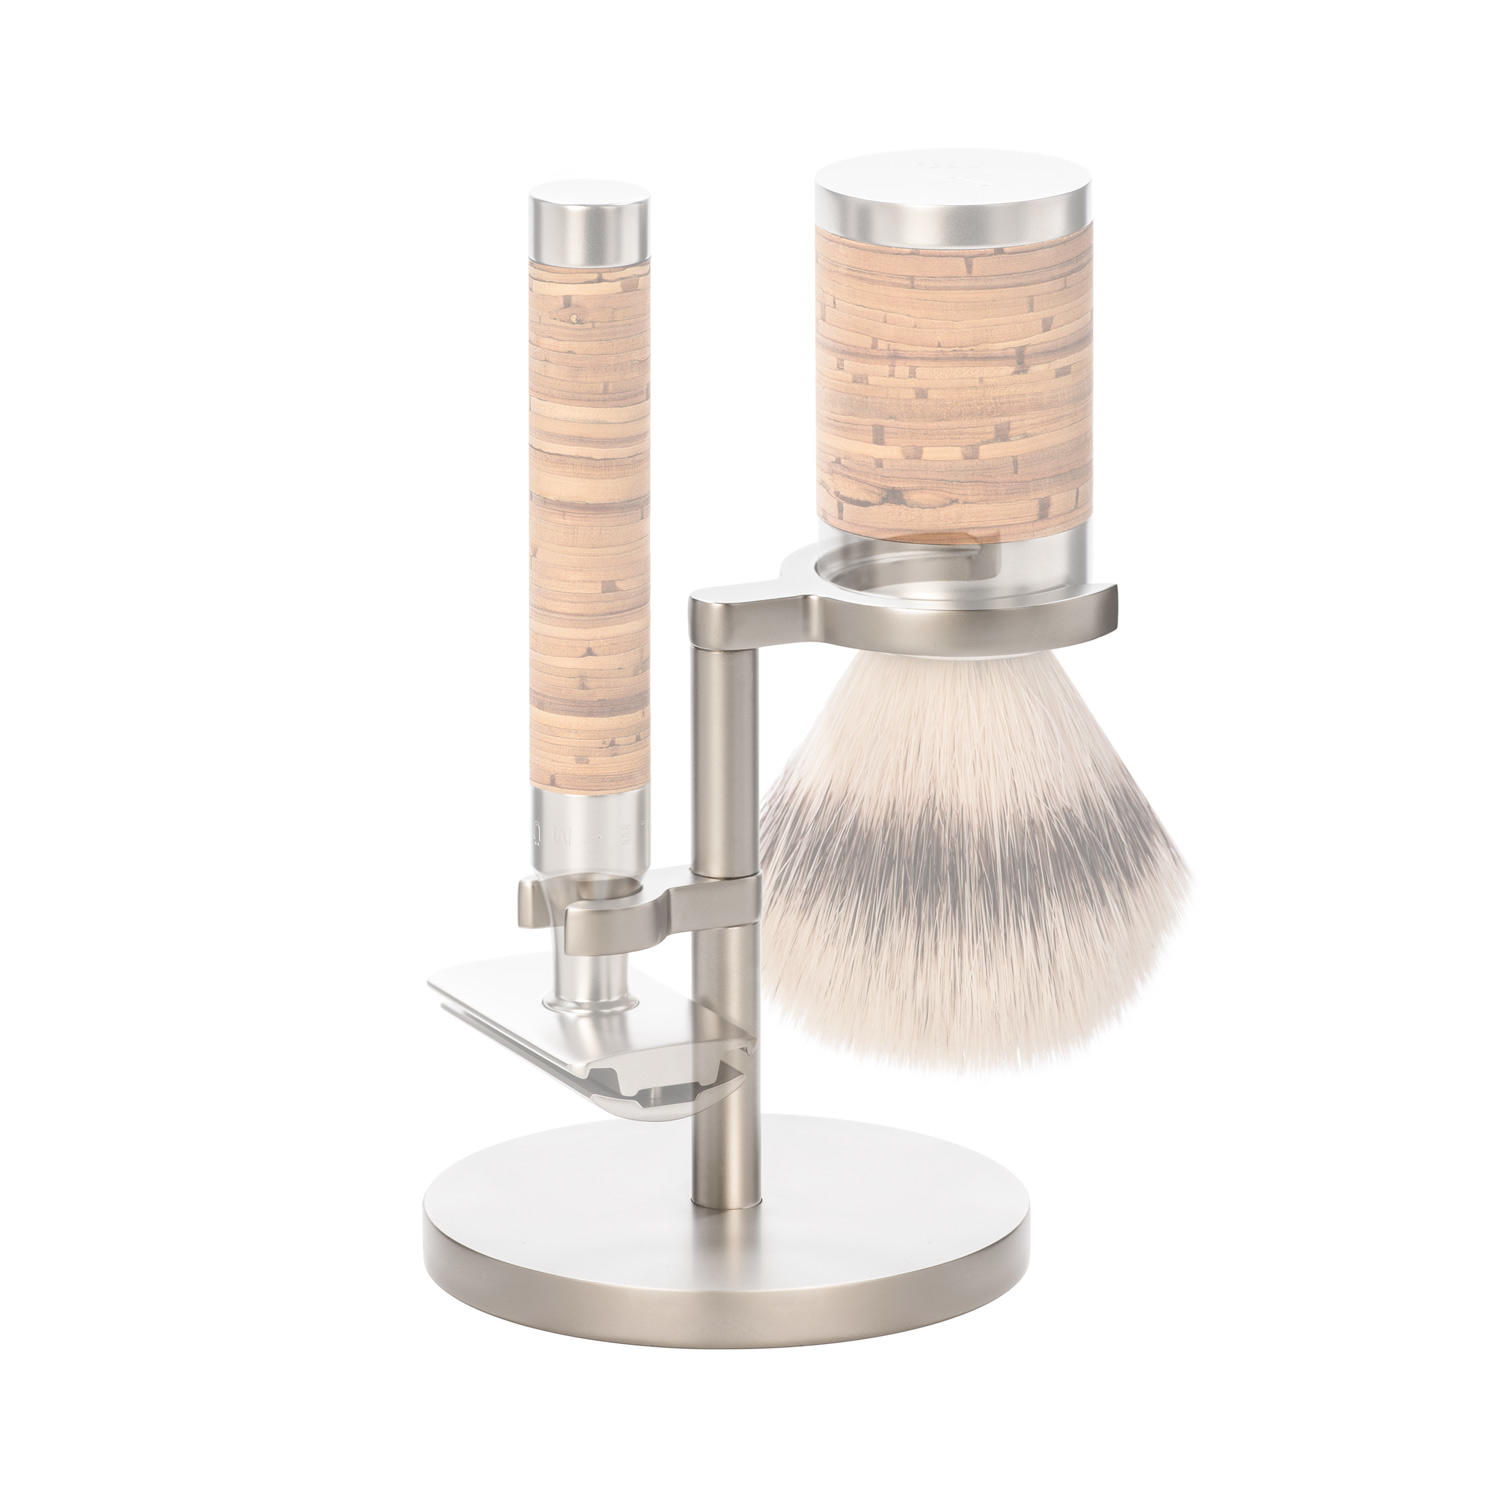 MUHLE ROCCA Matt Stainless Steel Shaving Set Stand for ROCCA Series